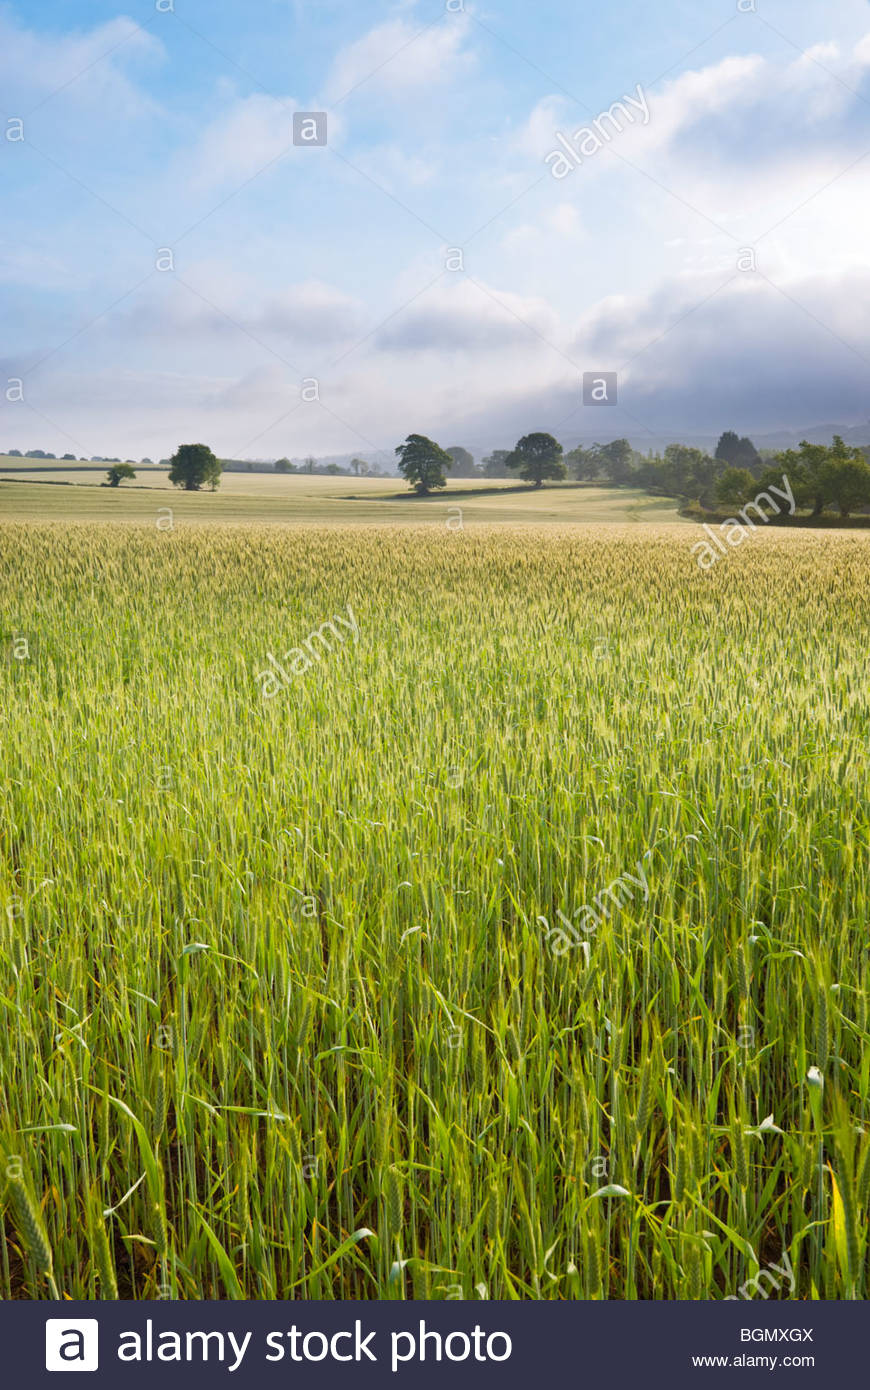 Wheat field, near Budleigh Salterton, East Devon, England. - Stock Image